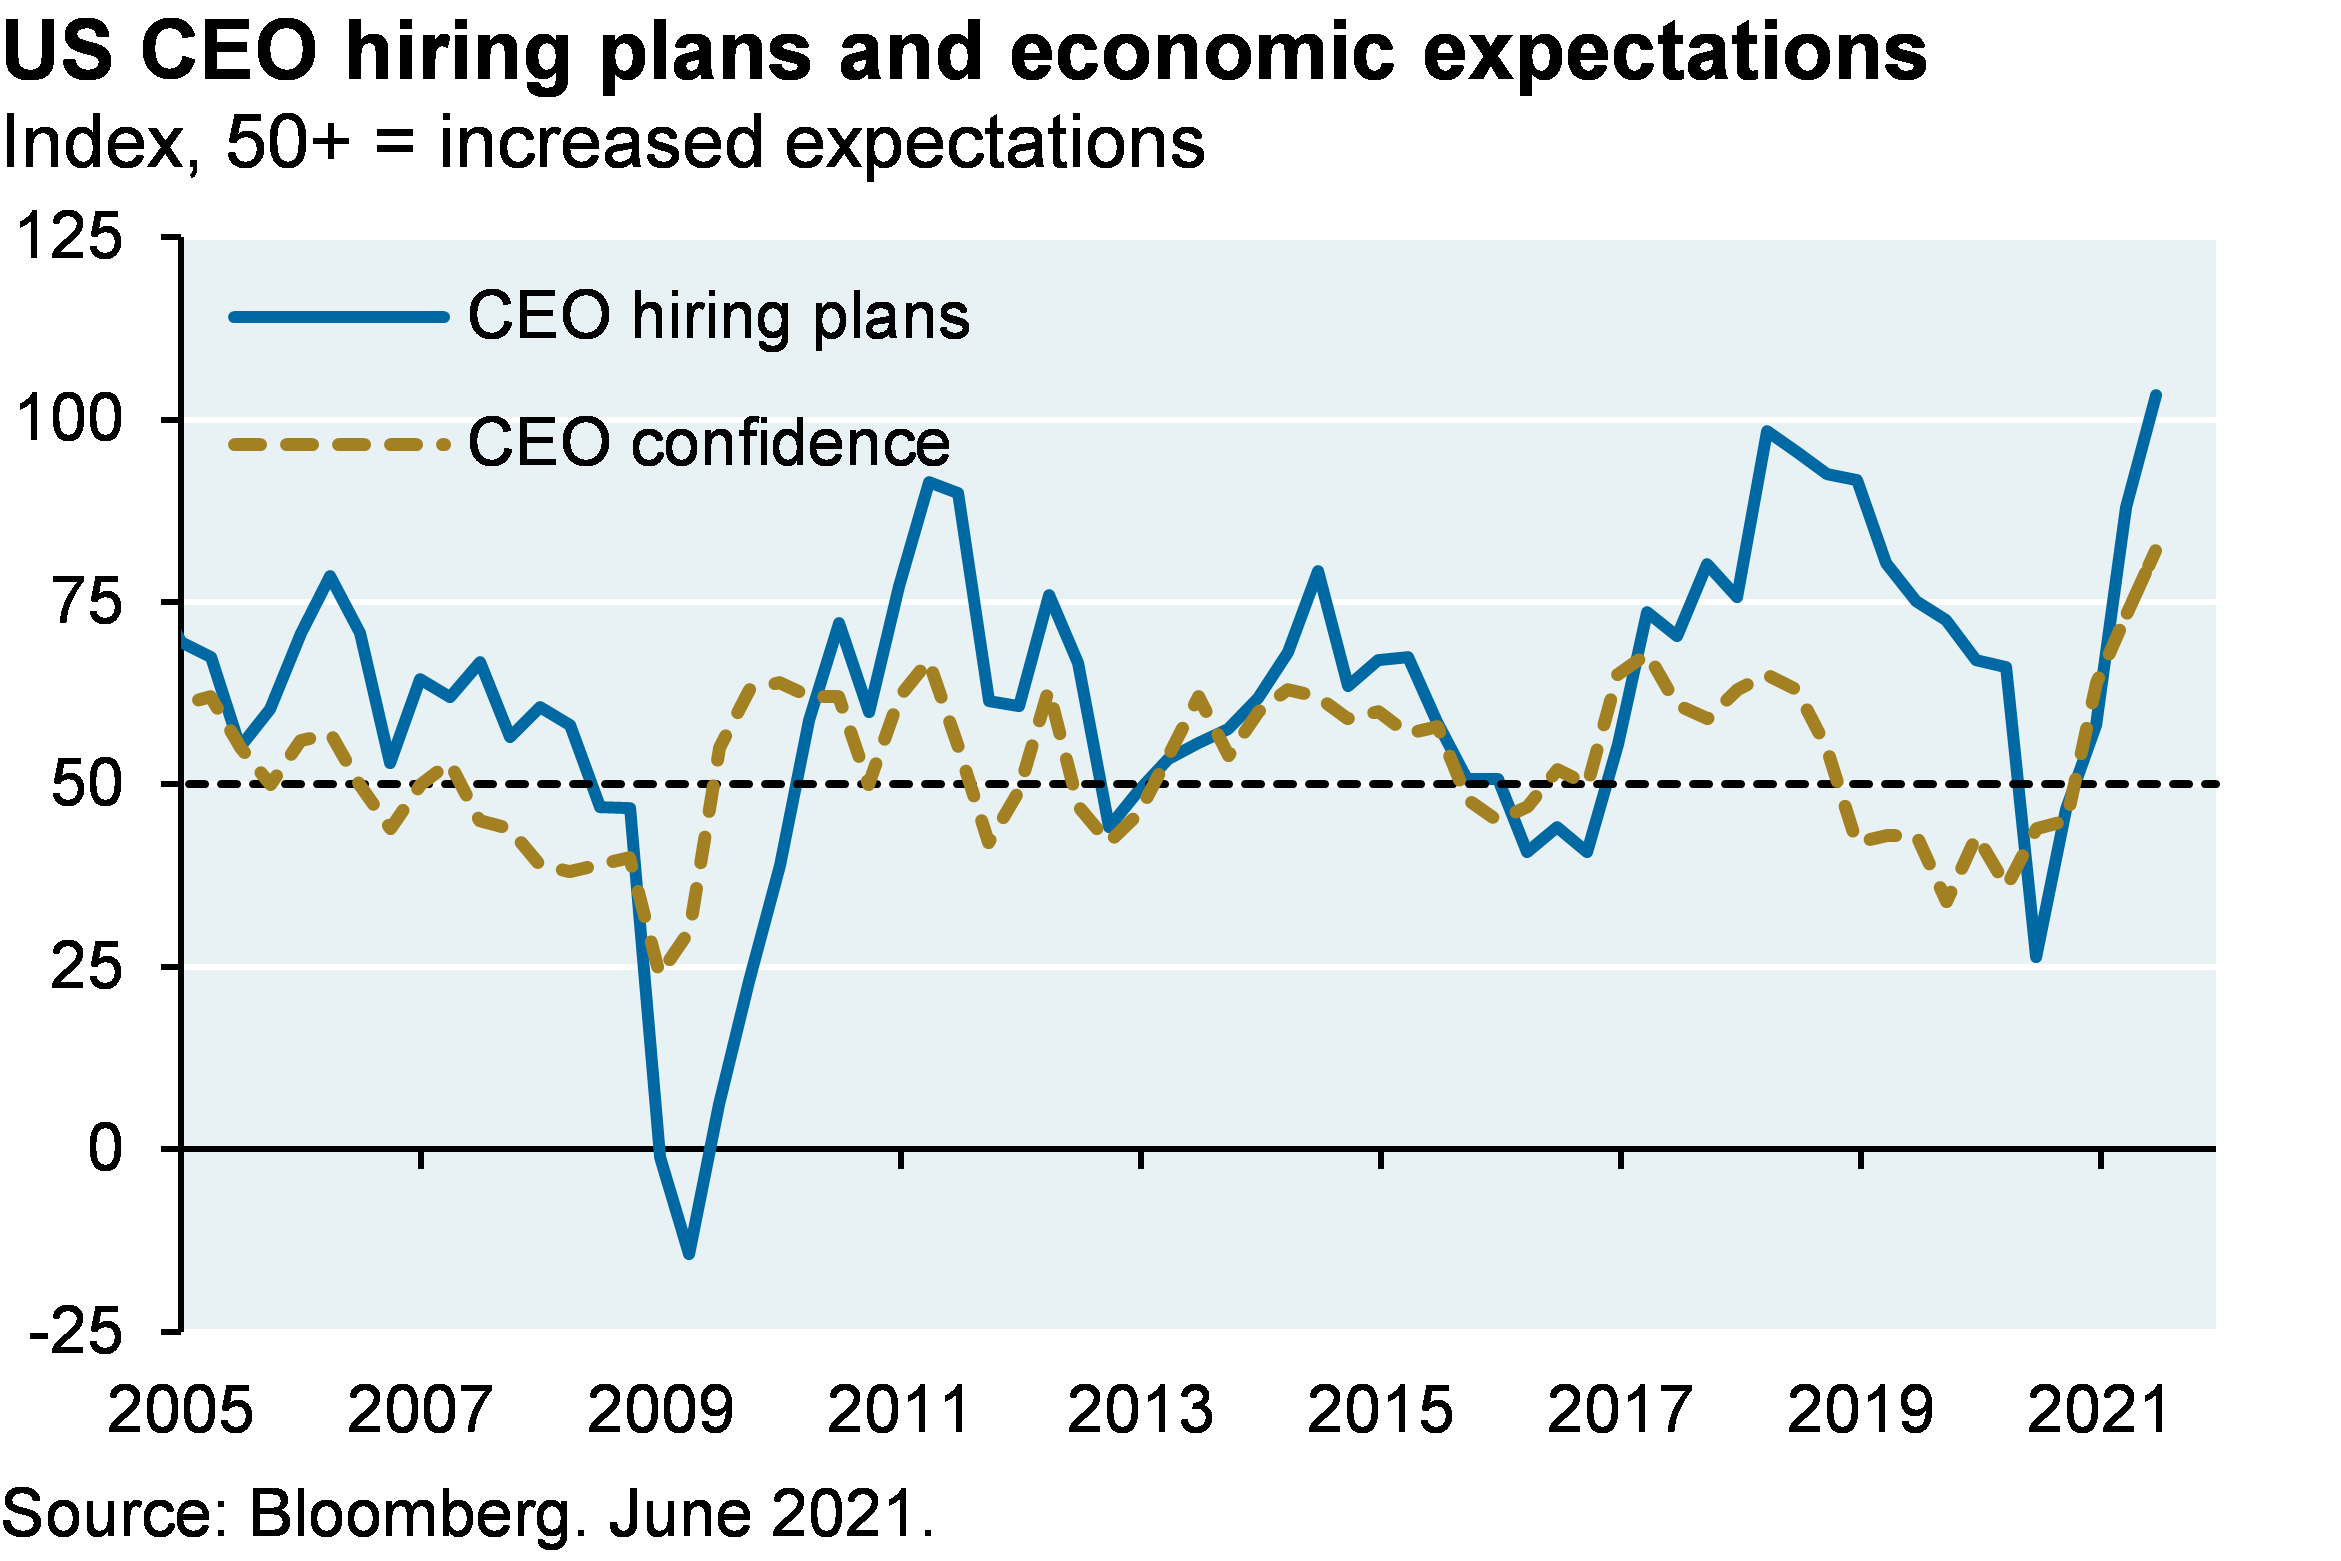 Line chart shows US CEO hiring plans and CEO confidence since 2005, shown as an index in which a value of 50 or greater indicates increased expectations. Both CEO hiring plans and confidence are at all time-highs, at values of around 100 and 80 respectively. In 2020, CEO hiring plans reached a low of around 25 and CEO confidence reached around 40. In 2008/2009, CEO hiring plans reached a low of around -10, and CEO confidence reached a low of around 25.